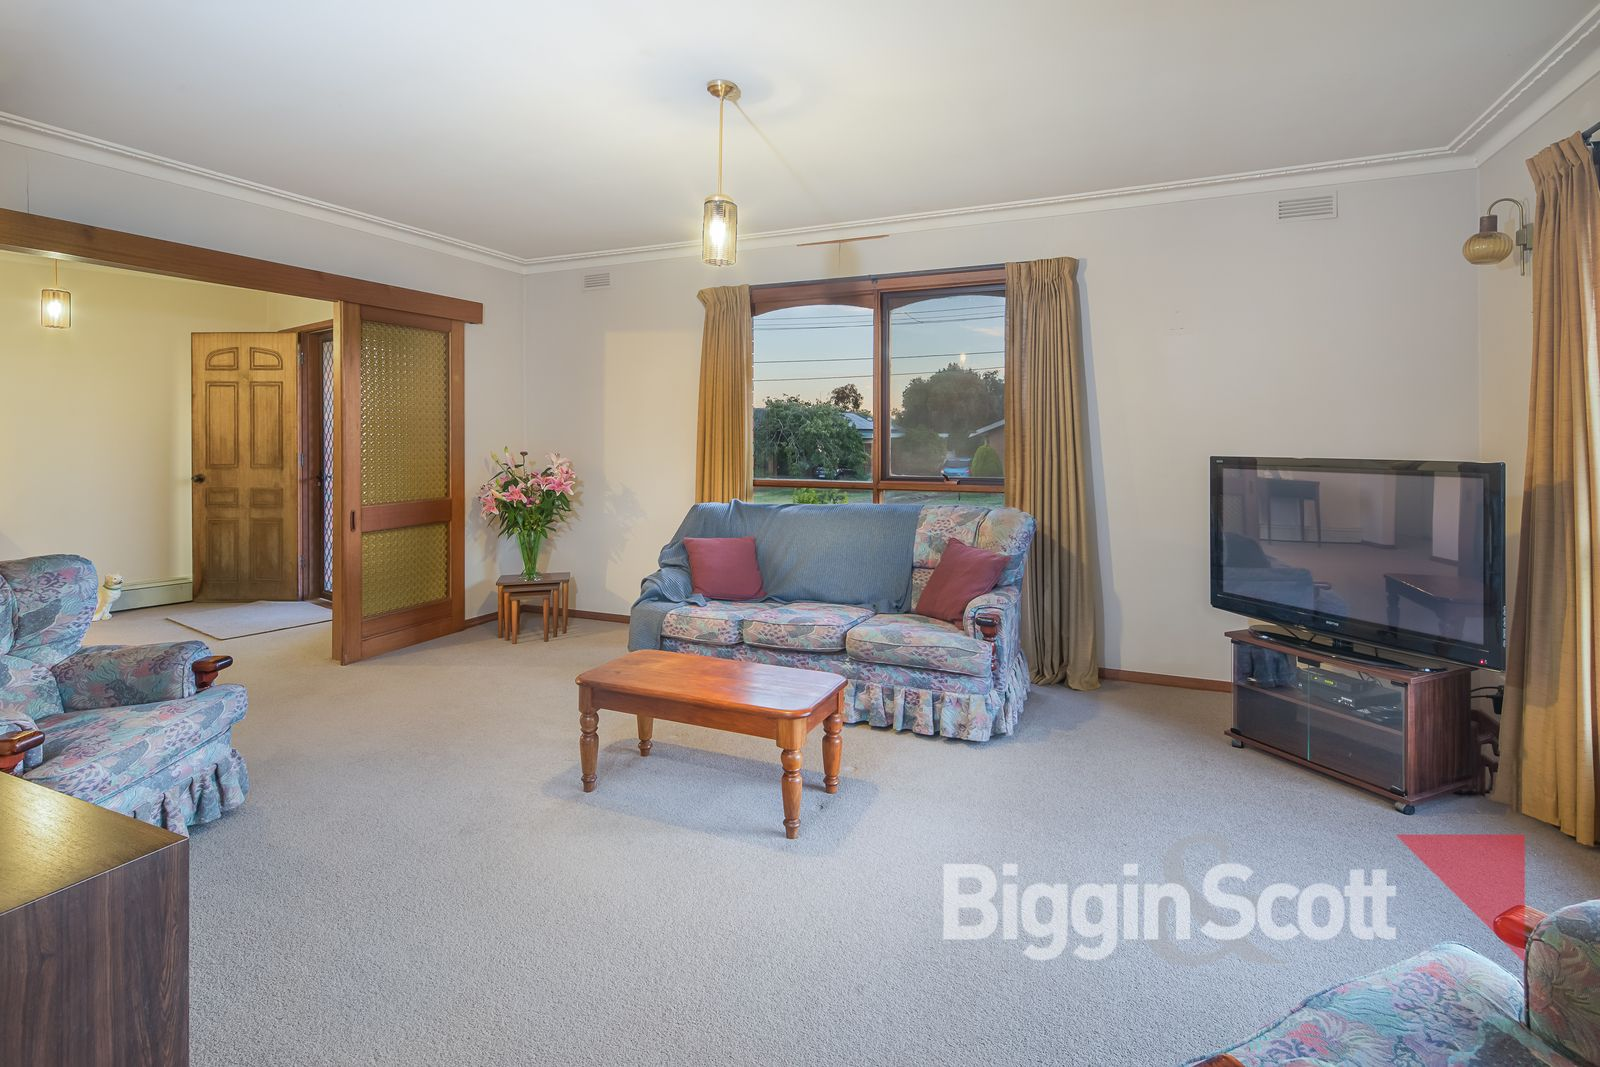 21 Kinnane Court, Ballarat North VIC 3350, Image 2